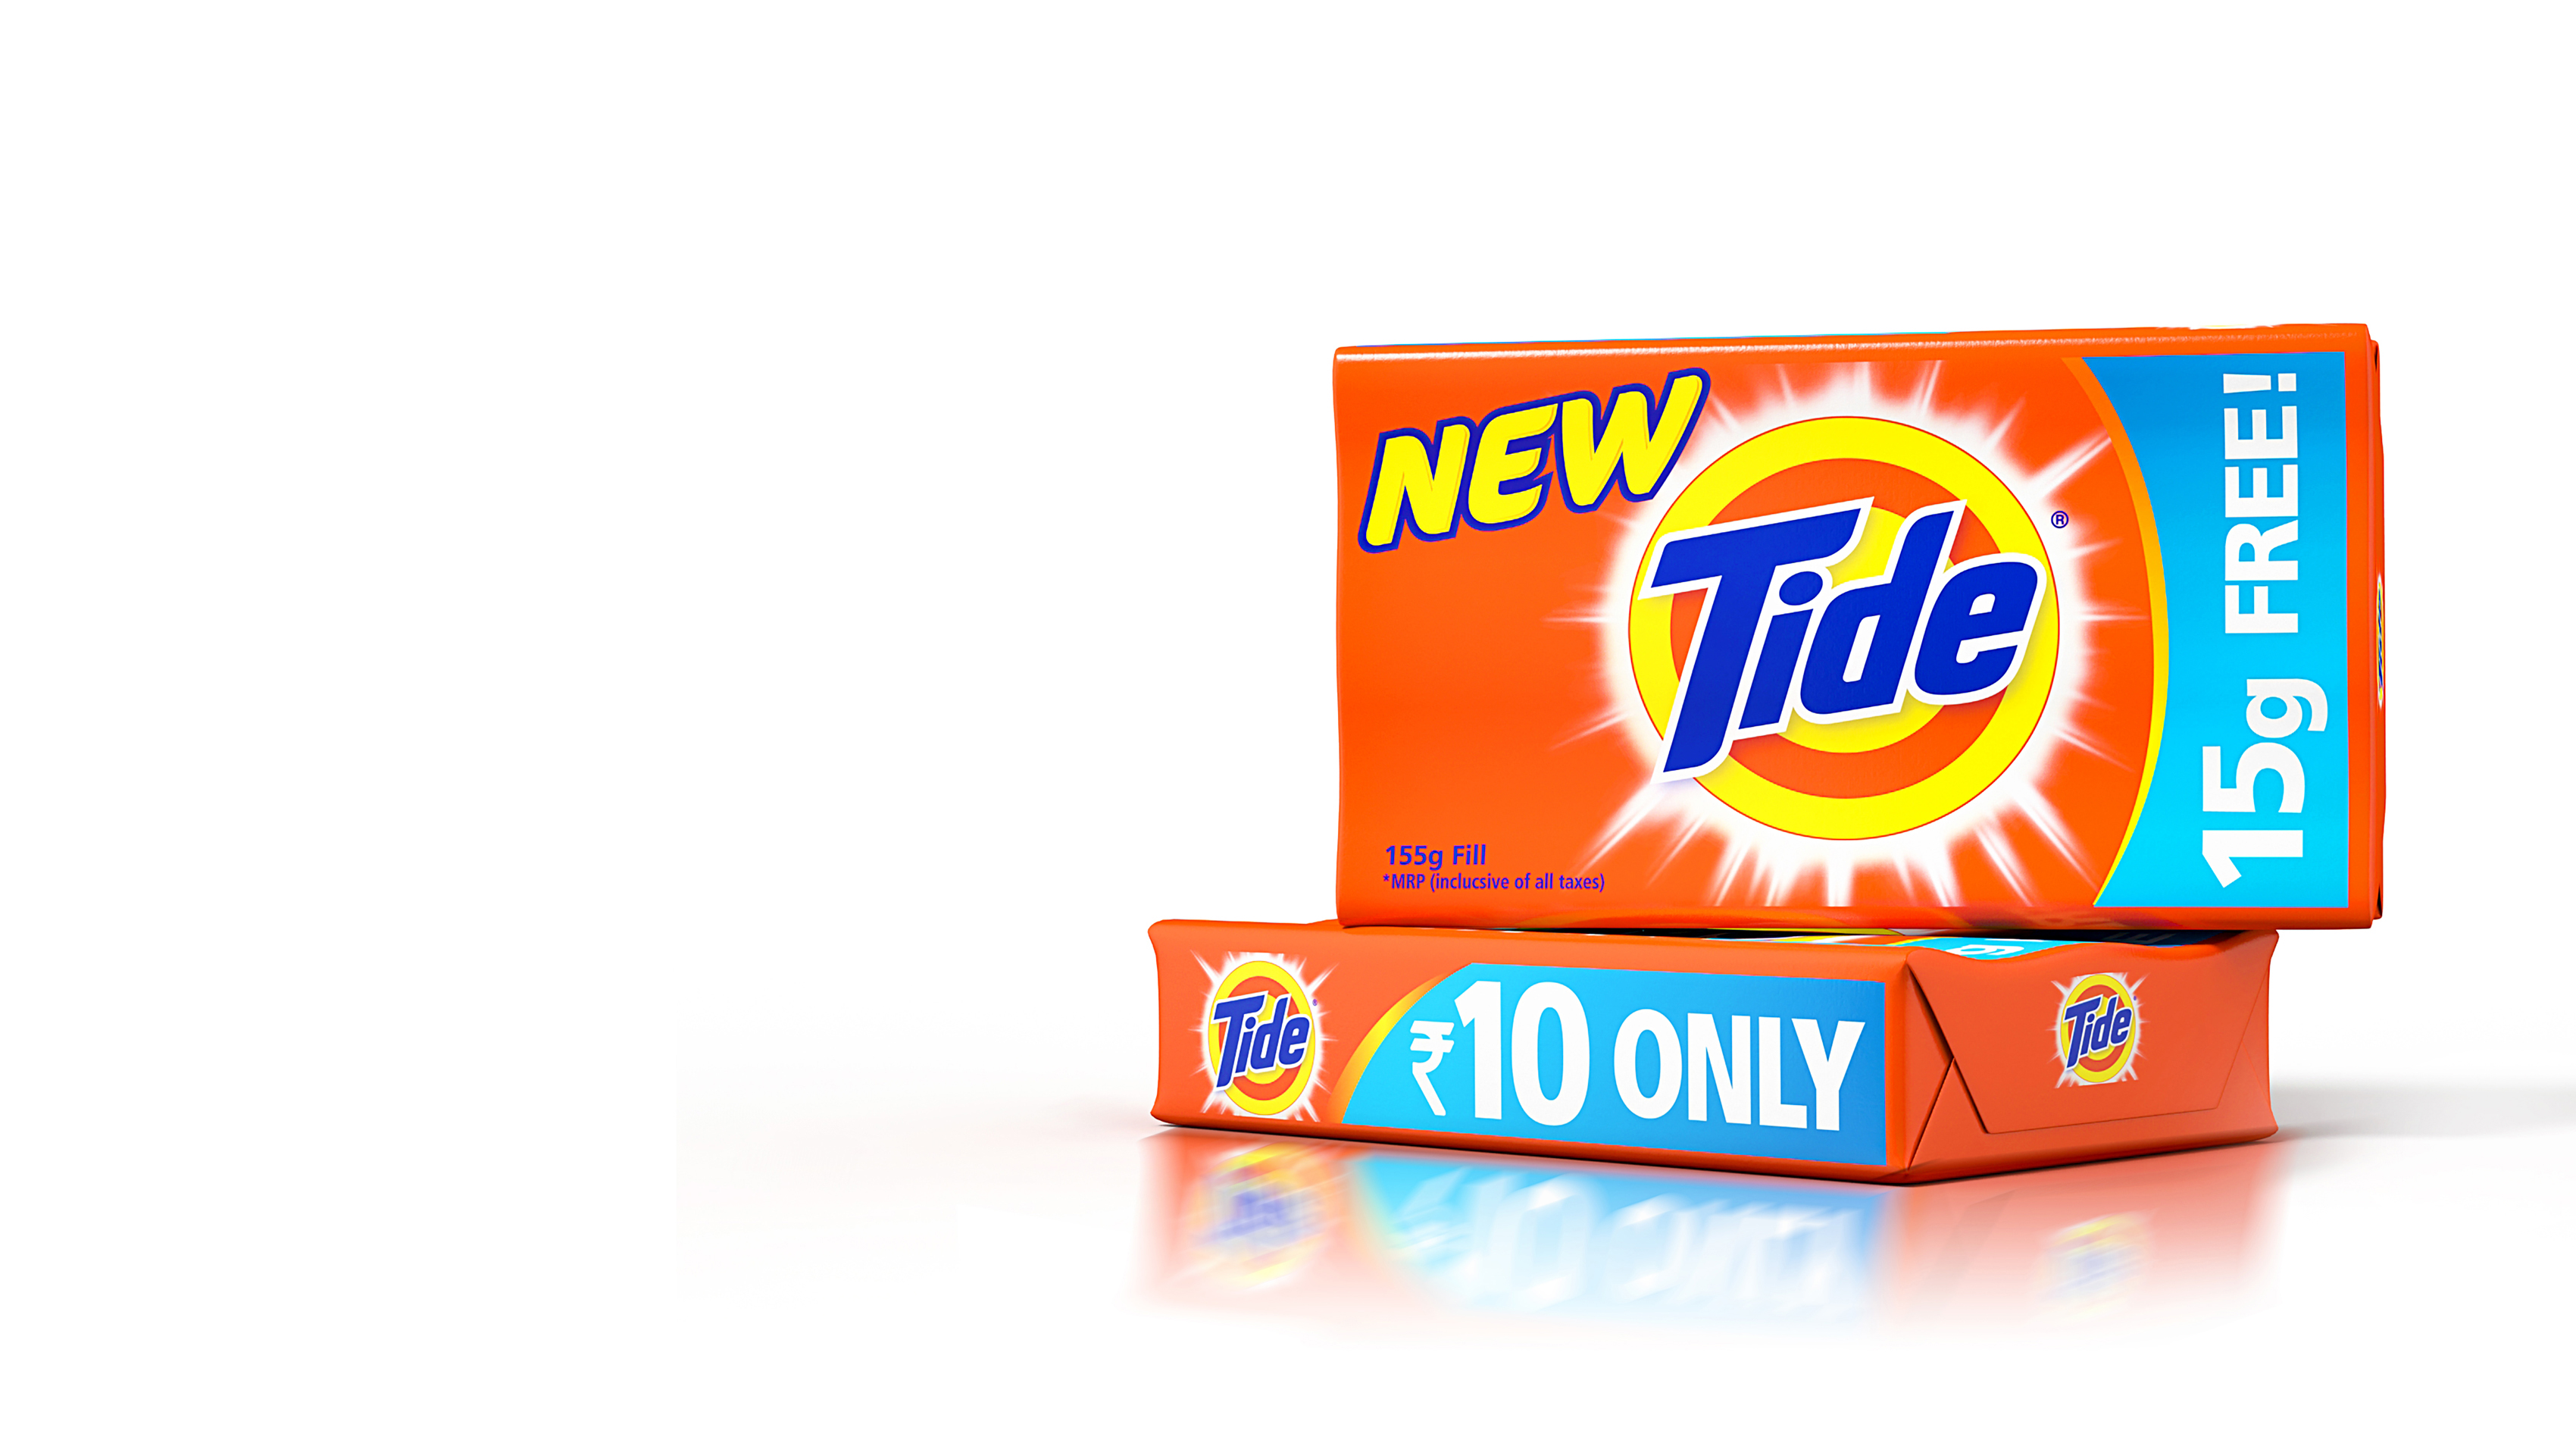 https://bonseydesign.com/wp-content/uploads/2020/05/•-WEB-9-Tide-Packs-RGB.jpg